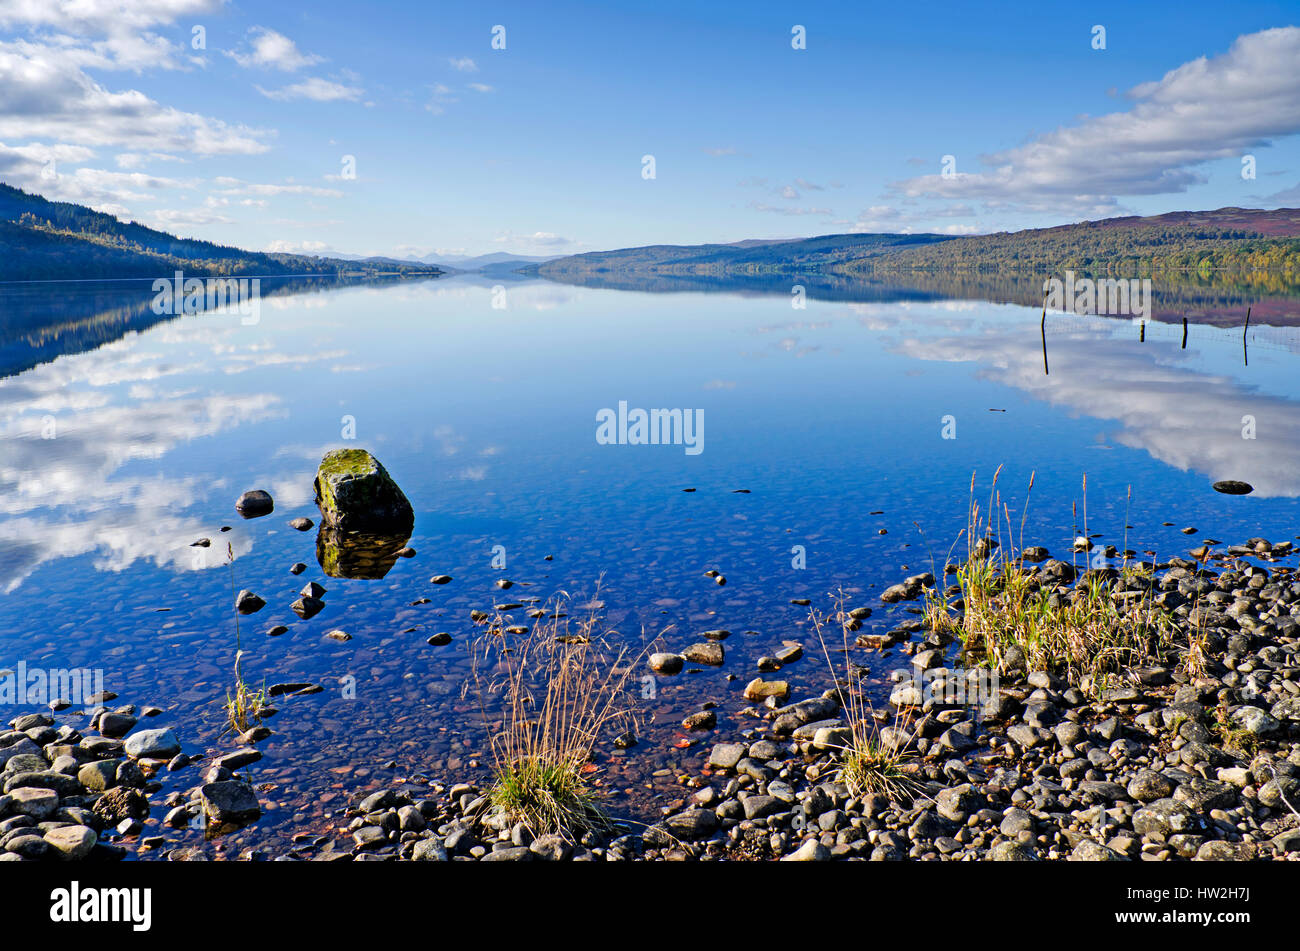 A view along the length of Loch Rannoch, Perthshire, Scottish Highlands, from the shore near Kinloch Rannoch, on - Stock Image